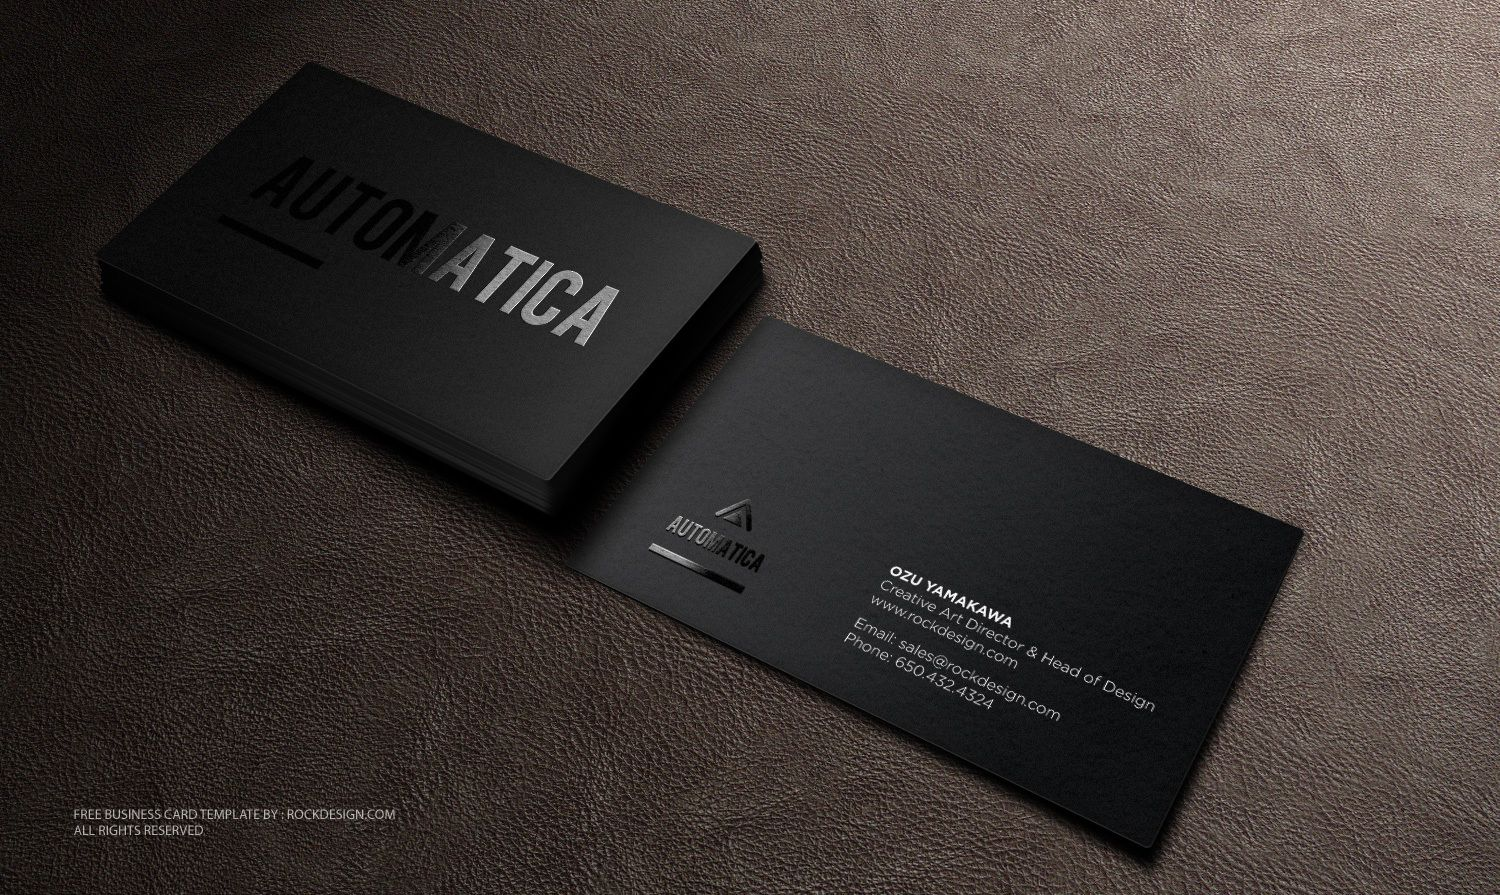 Black business card template download free design templates black business card template download free design templates accmission